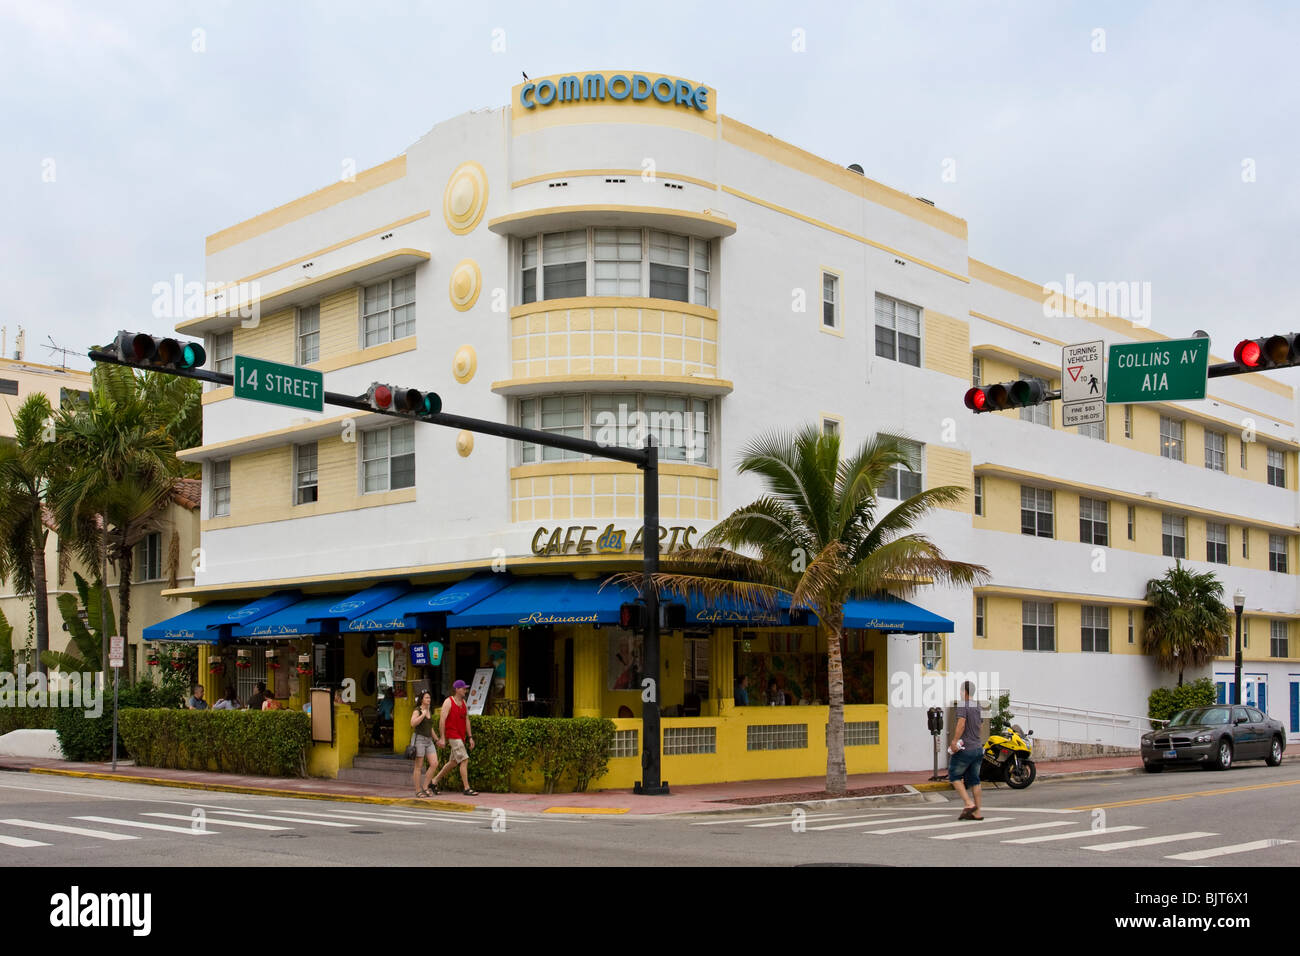 The 1936 Henry Hohauser designed art deco Commodore Hotel on Collins and 14th, South Beach, Miami, Florida USA. Stock Photo